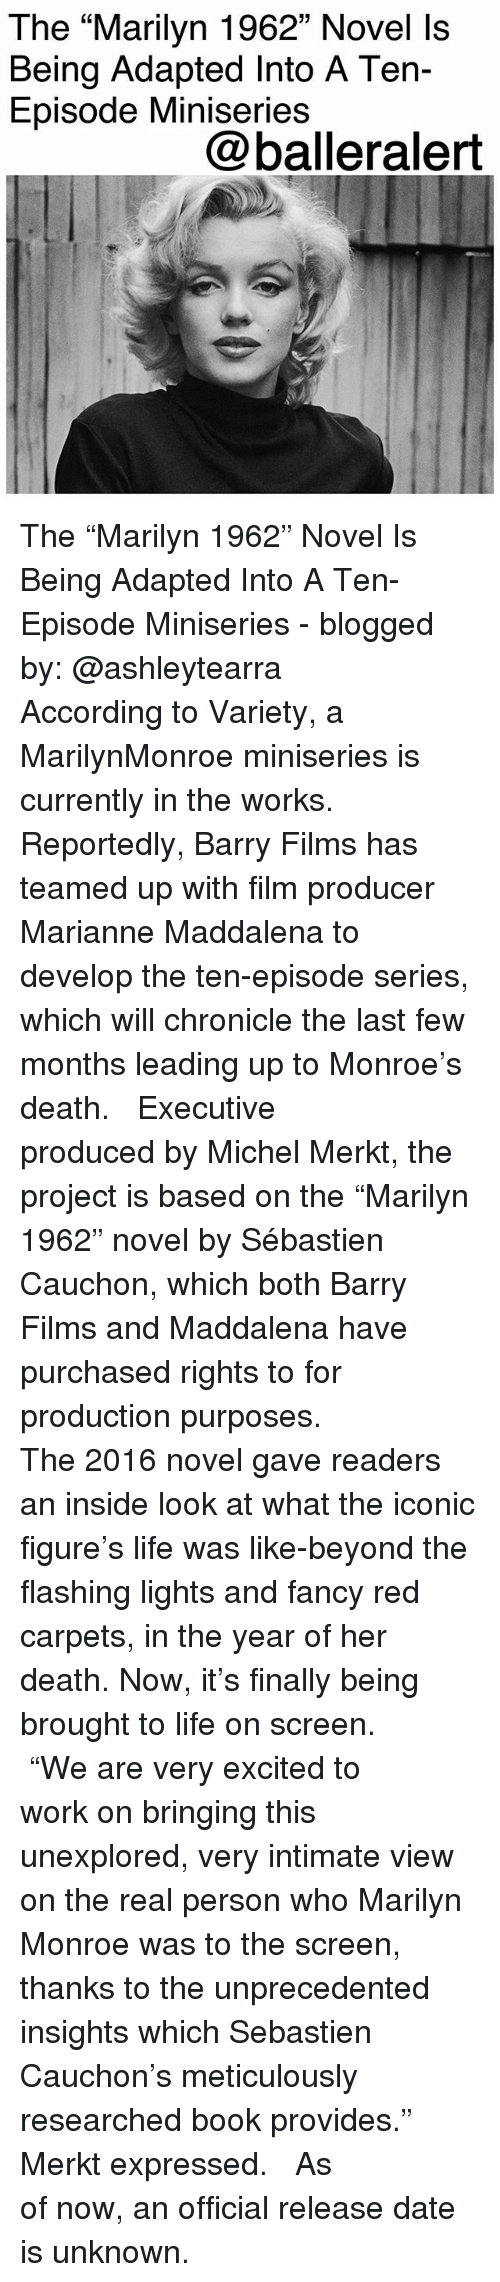 """marilynmonroe: The """"Marilyn 1962"""" Novel ls  Being Adapted Into A Ten-  Episode Miniserie:s  @balleralert The """"Marilyn 1962"""" Novel Is Being Adapted Into A Ten-Episode Miniseries - blogged by: @ashleytearra ⠀⠀⠀⠀⠀⠀⠀ ⠀⠀⠀⠀⠀⠀⠀ According to Variety, a MarilynMonroe miniseries is currently in the works. ⠀⠀⠀⠀⠀⠀⠀ ⠀⠀⠀⠀⠀⠀⠀ Reportedly, Barry Films has teamed up with film producer Marianne Maddalena to develop the ten-episode series, which will chronicle the last few months leading up to Monroe's death. ⠀⠀⠀⠀⠀⠀⠀ ⠀⠀⠀⠀⠀⠀⠀ Executive produced by Michel Merkt, the project is based on the """"Marilyn 1962"""" novel by Sébastien Cauchon, which both Barry Films and Maddalena have purchased rights to for production purposes. ⠀⠀⠀⠀⠀⠀⠀ ⠀⠀⠀⠀⠀⠀⠀ The 2016 novel gave readers an inside look at what the iconic figure's life was like-beyond the flashing lights and fancy red carpets, in the year of her death. Now, it's finally being brought to life on screen. ⠀⠀⠀⠀⠀⠀⠀ ⠀⠀⠀⠀⠀⠀⠀ """"We are very excited to work on bringing this unexplored, very intimate view on the real person who Marilyn Monroe was to the screen, thanks to the unprecedented insights which Sebastien Cauchon's meticulously researched book provides."""" Merkt expressed. ⠀⠀⠀⠀⠀⠀⠀ ⠀⠀⠀⠀⠀⠀⠀ As of now, an official release date is unknown."""